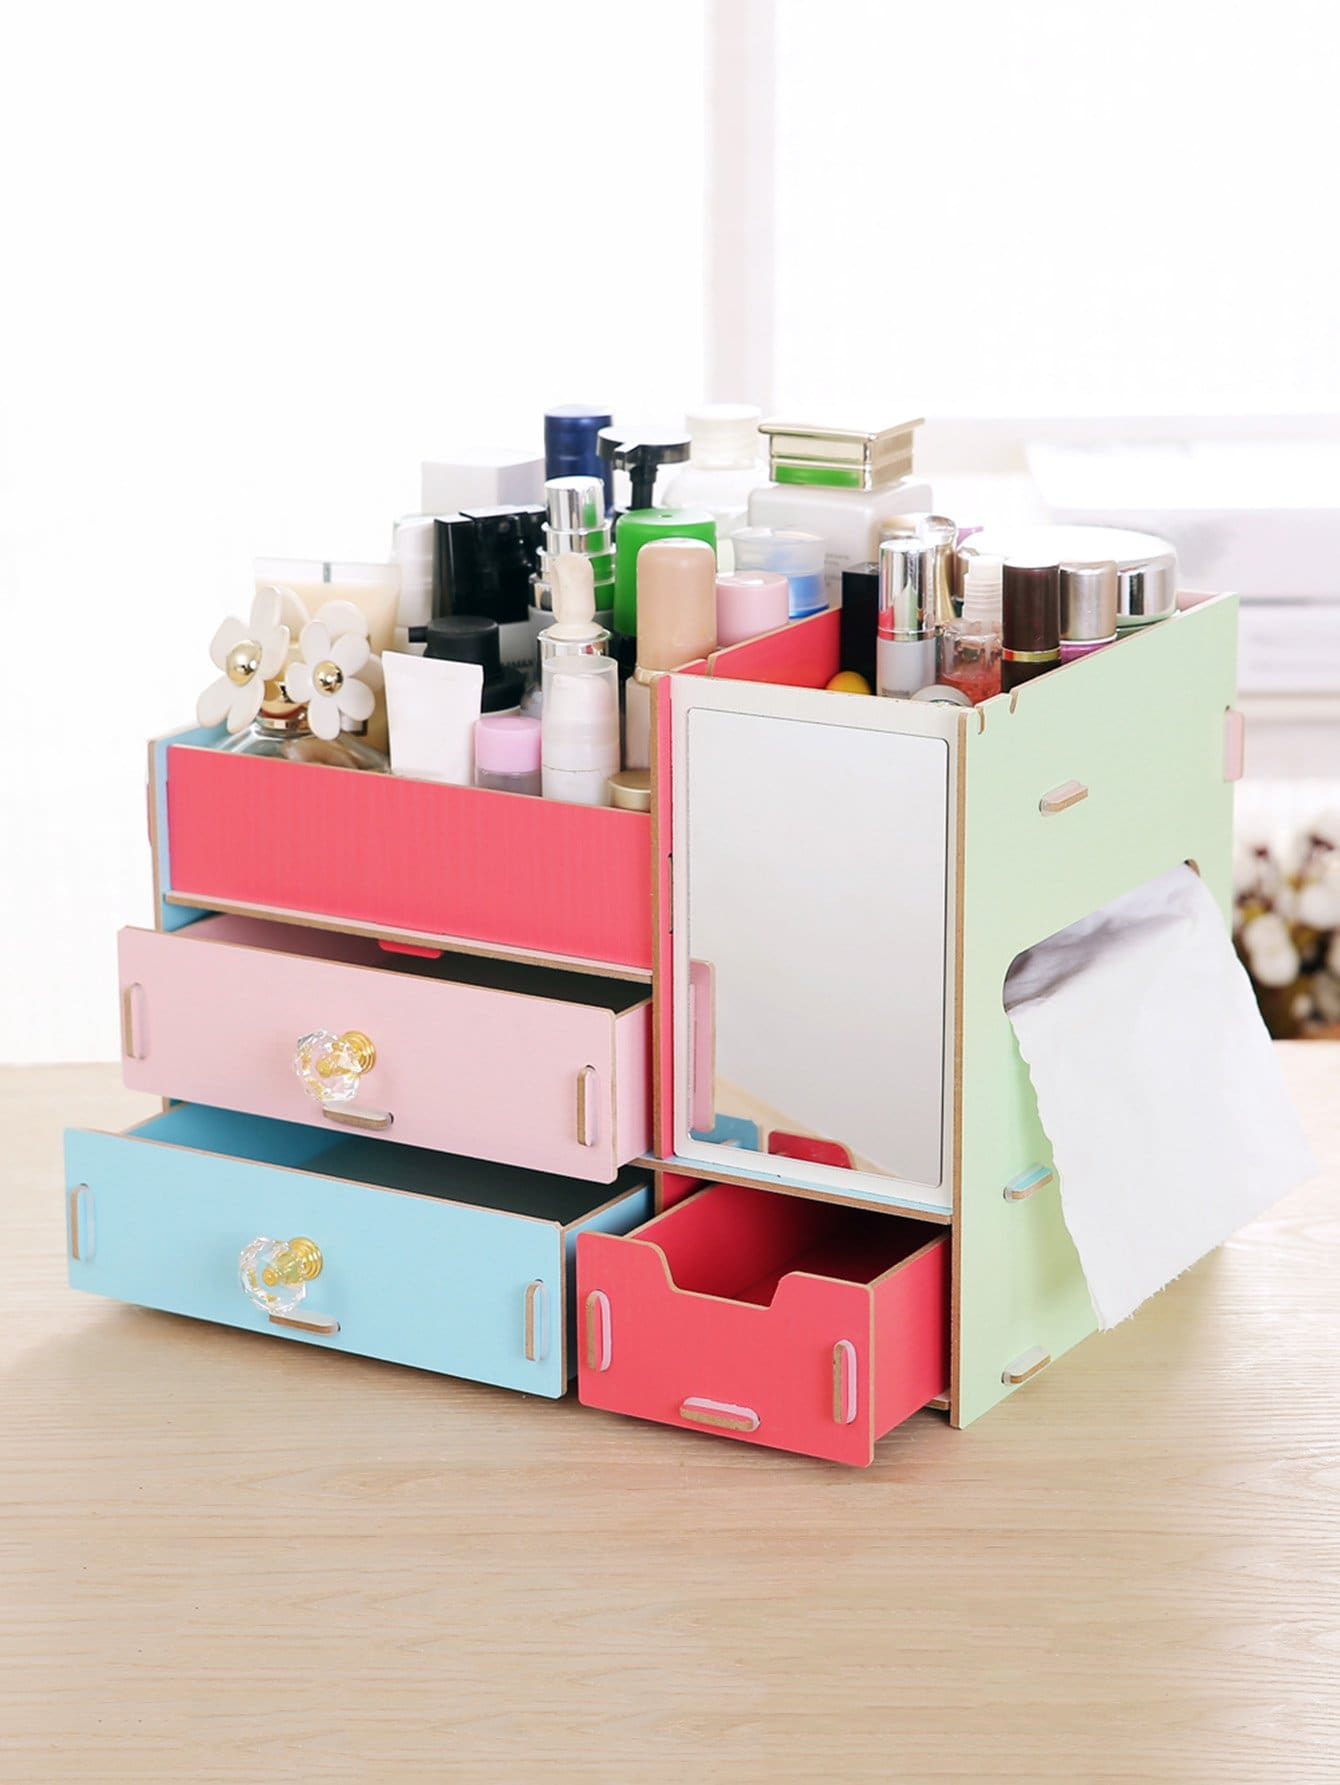 Colorblock Layered Drawer Desk Organizer With Mirror kitcox01761easaf3274bl value kit safco one drawer hospitality organizer saf3274bl and clorox disinfecting wipes cox01761ea